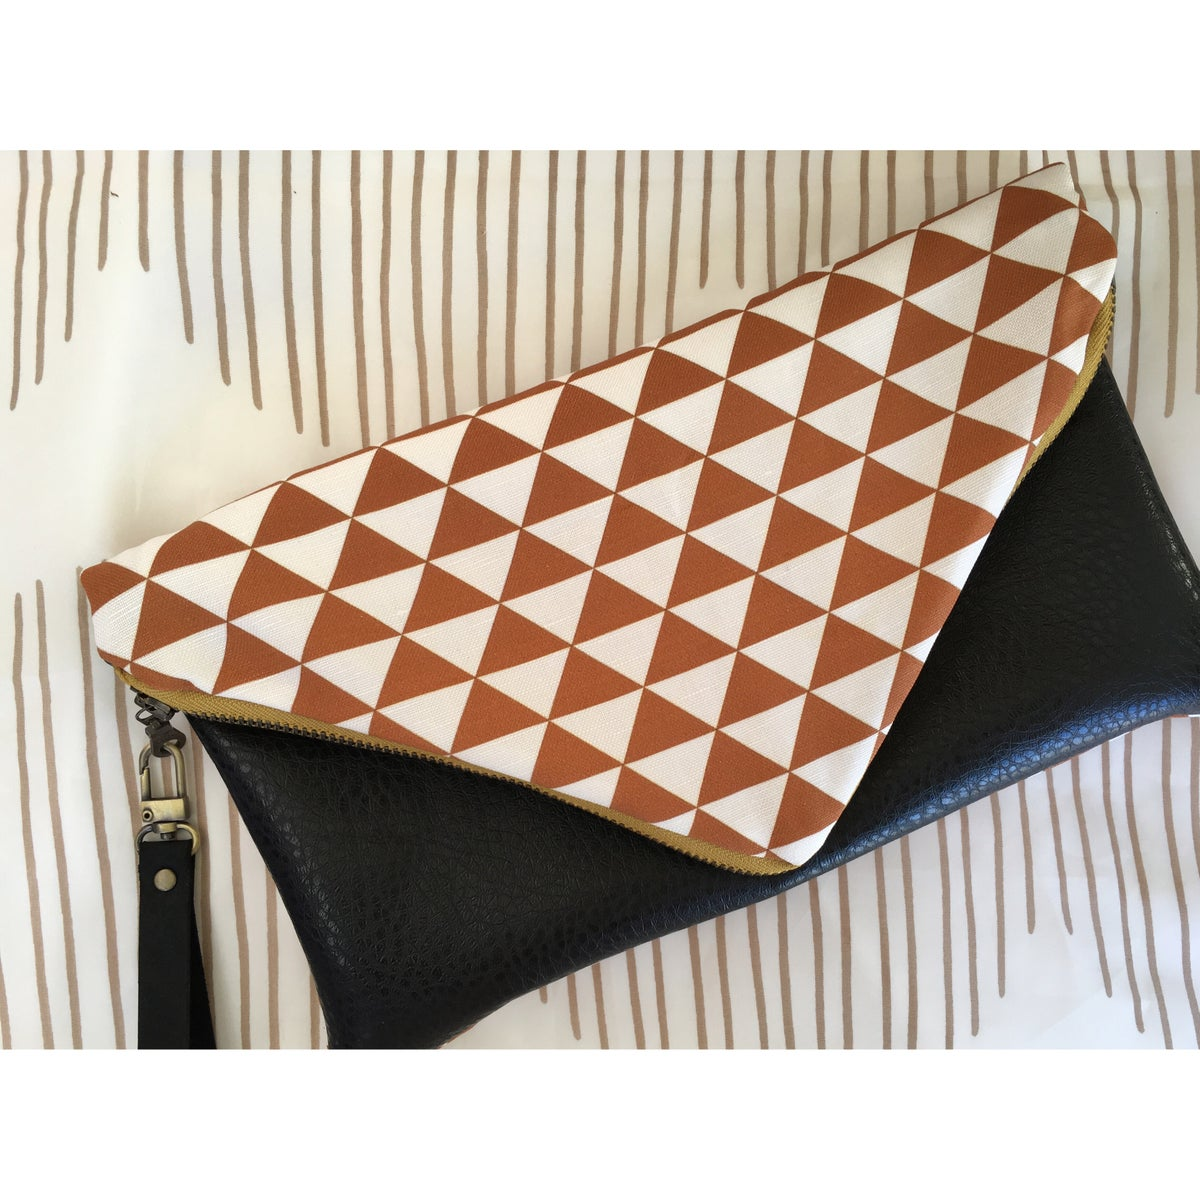 Image of Mustard Brown Mano Envelope Clutch or Crossbody